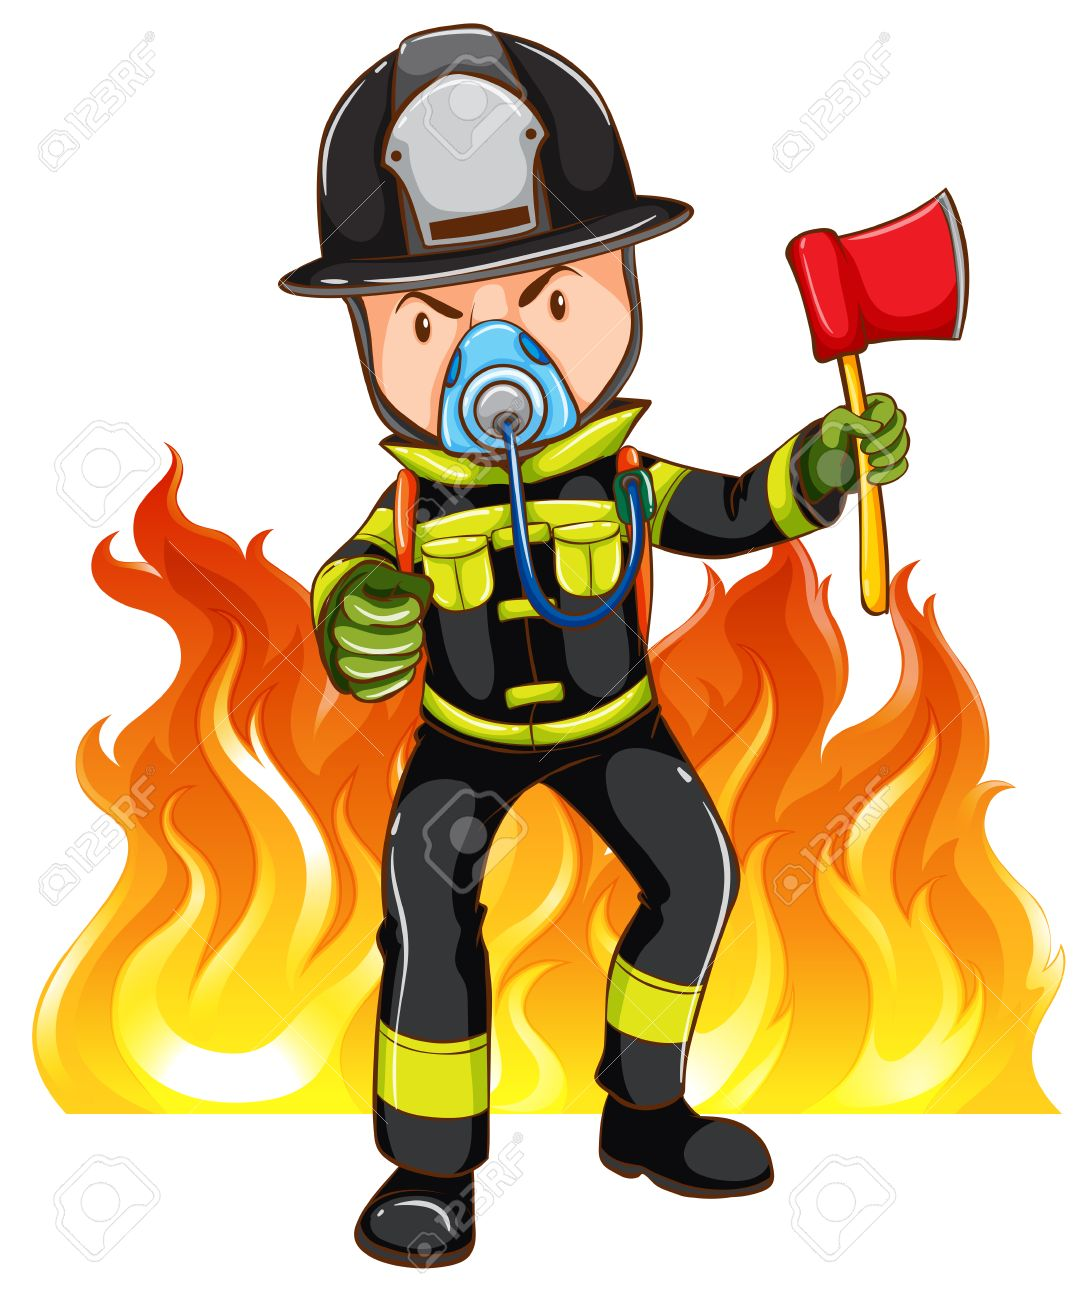 Anry fireman clipart picture freeuse Fireman clipart brave - 58 transparent clip arts, images and ... picture freeuse